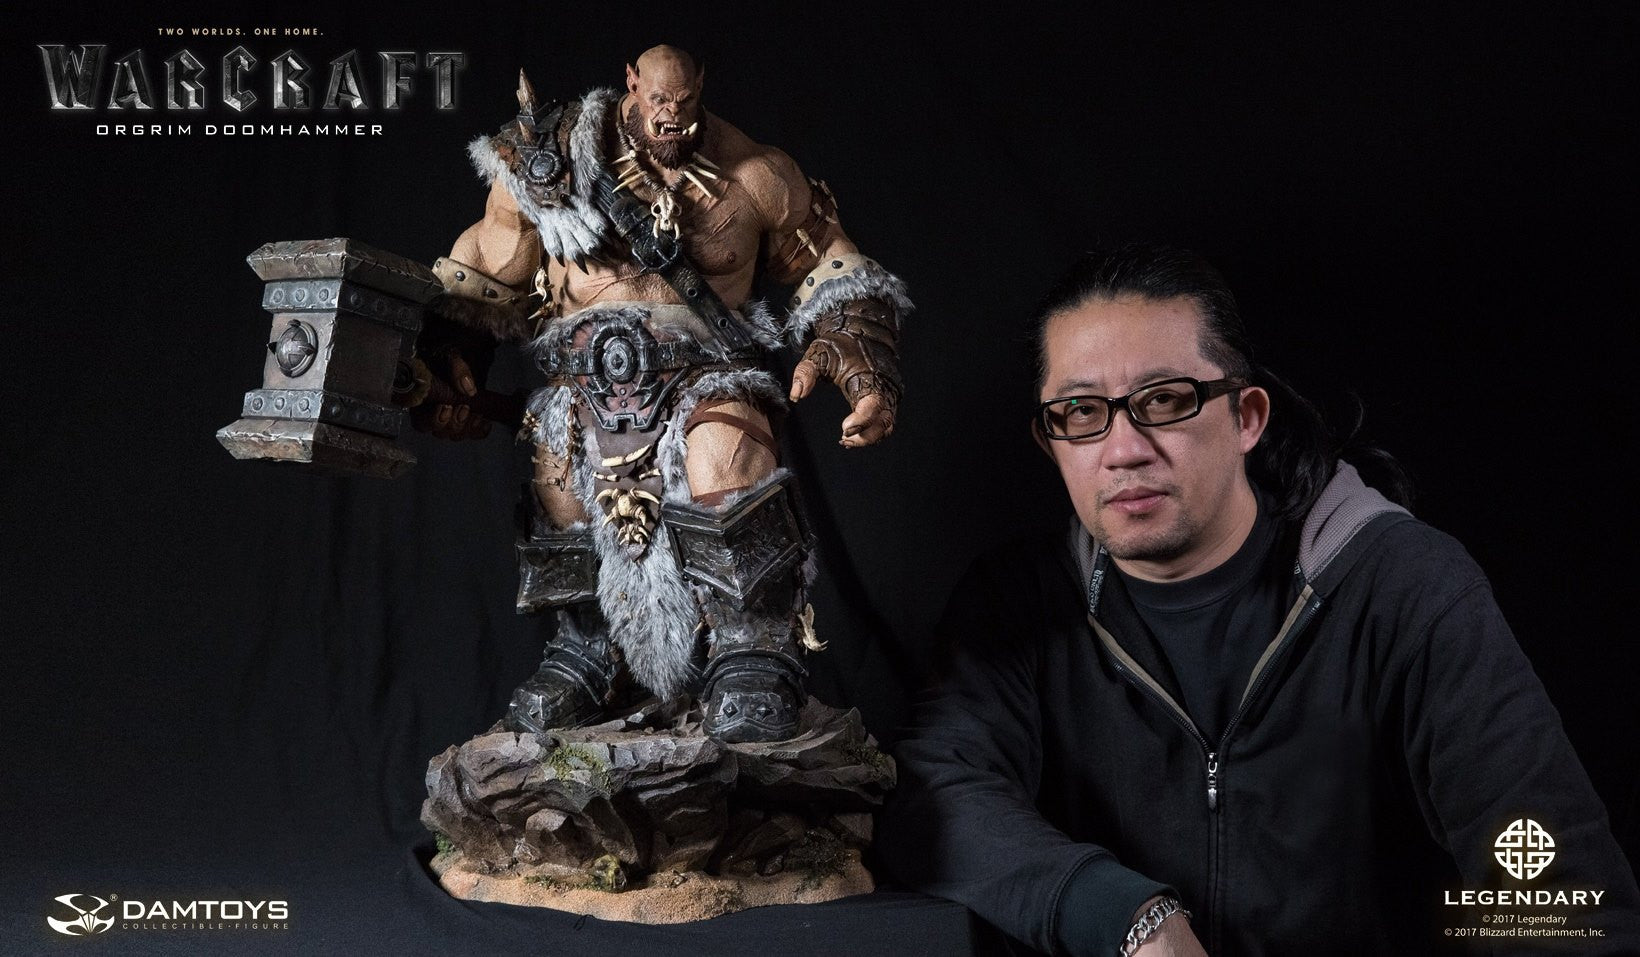 Dam Toys - DMLW02 - Epic Series - Warcraft - Orgrim Doomhammer Premium Statue - Marvelous Toys - 21